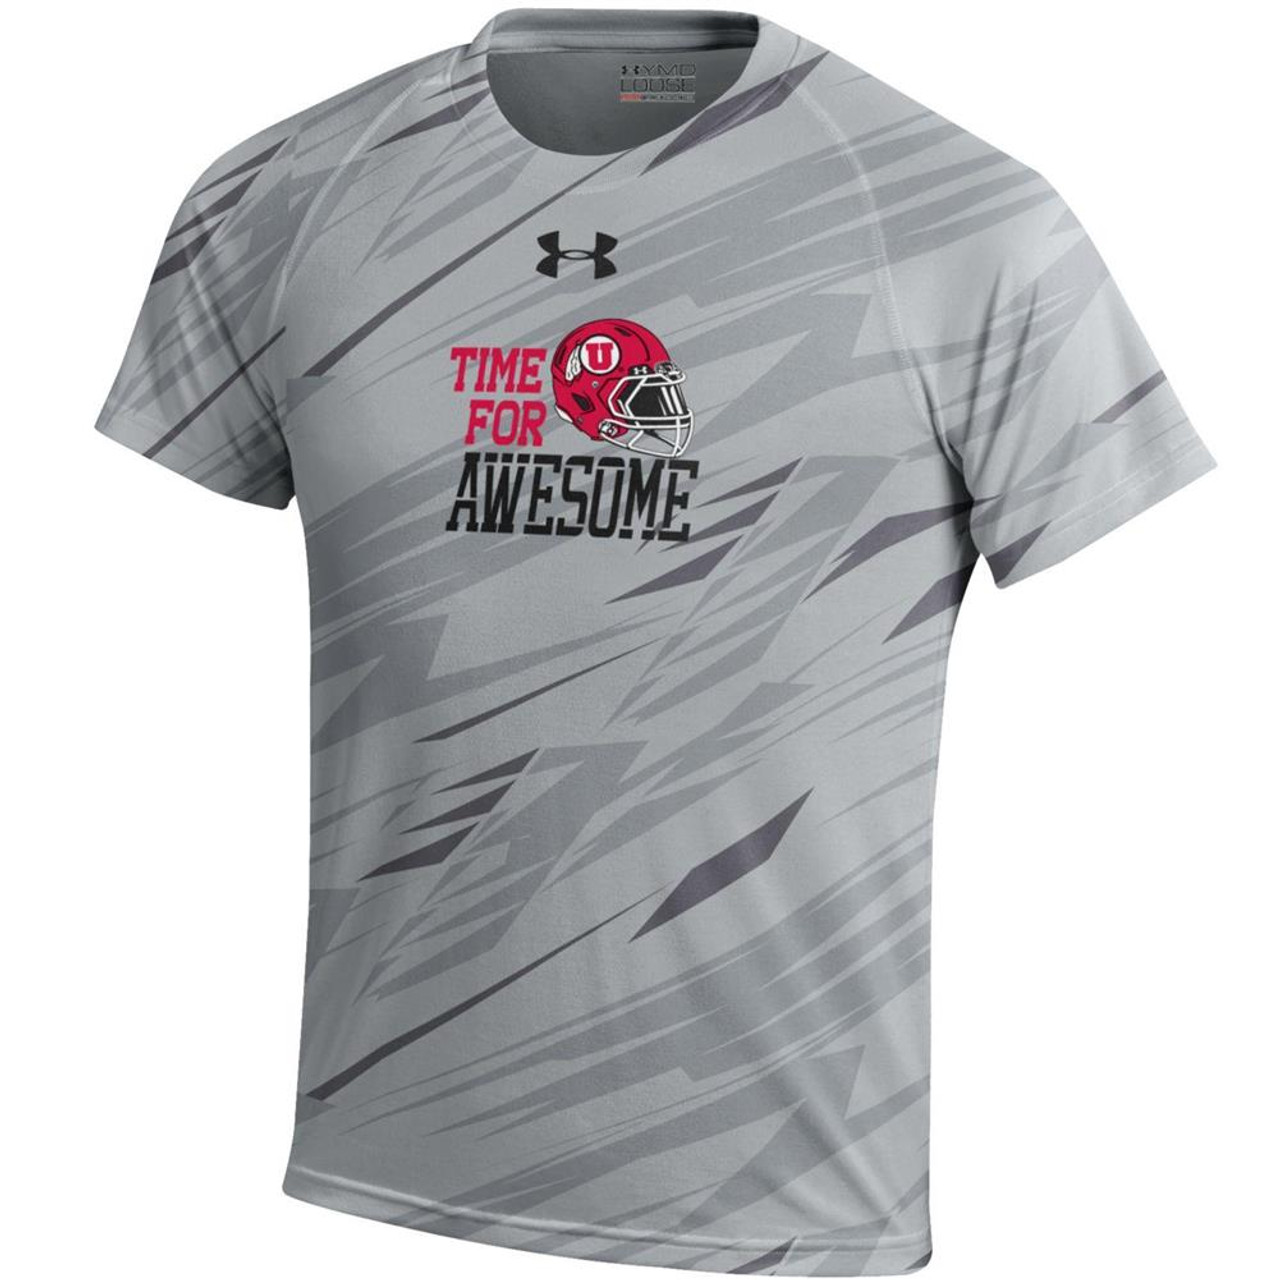 outlet store sale 400f9 d2c7a Youth Boy's University of Utah Utes Under Armour NuTech Tee